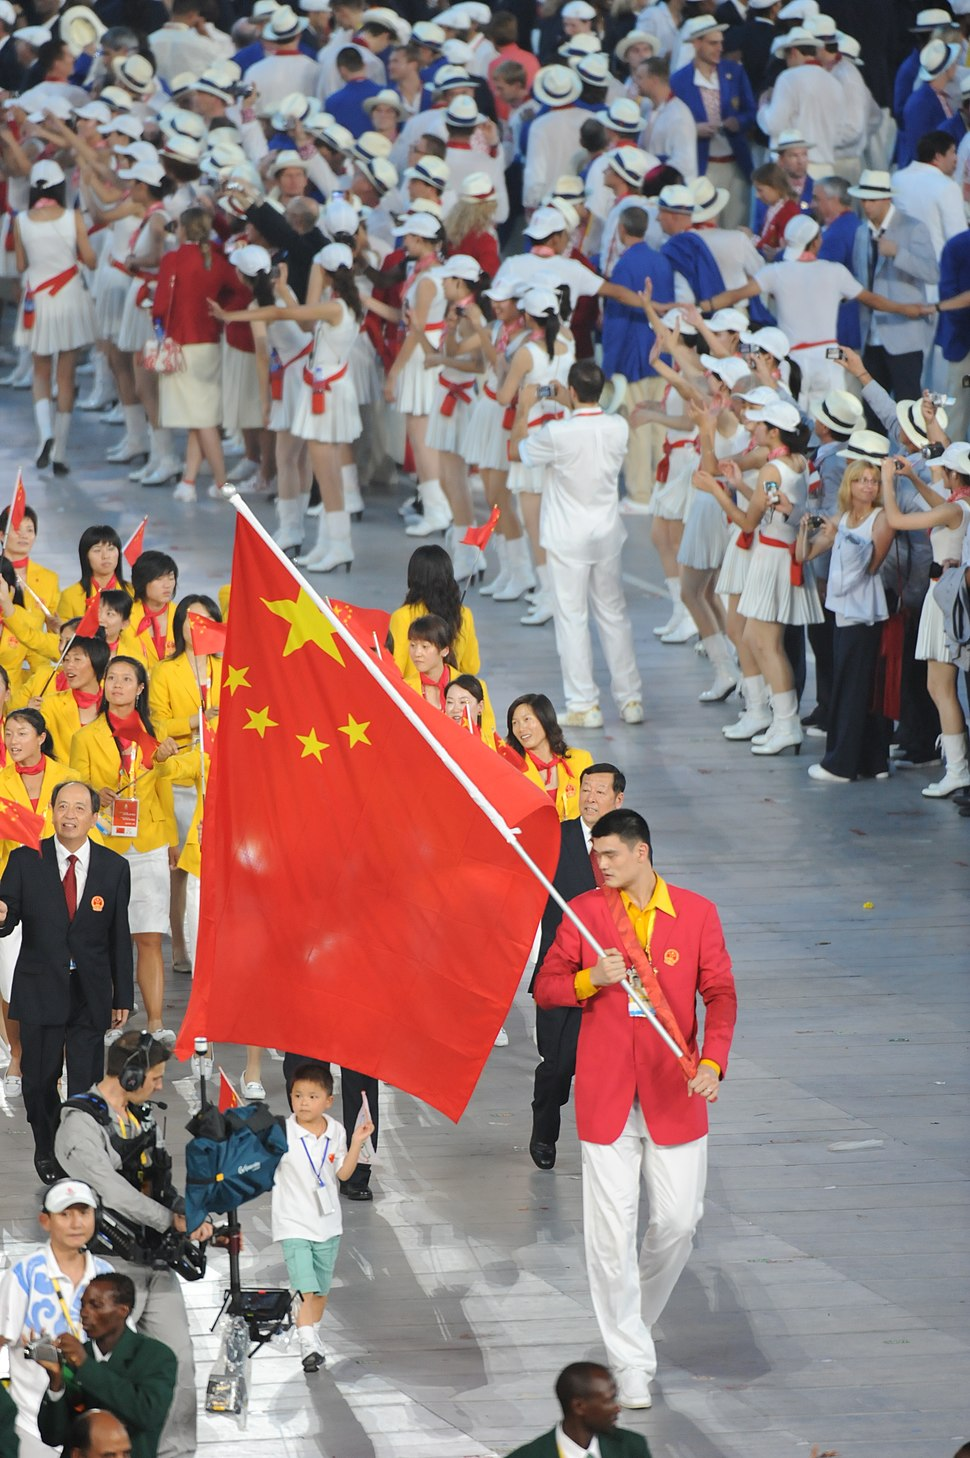 Yao Ming with the Chinese flag 2008 Summer Olympics - Opening Ceremony